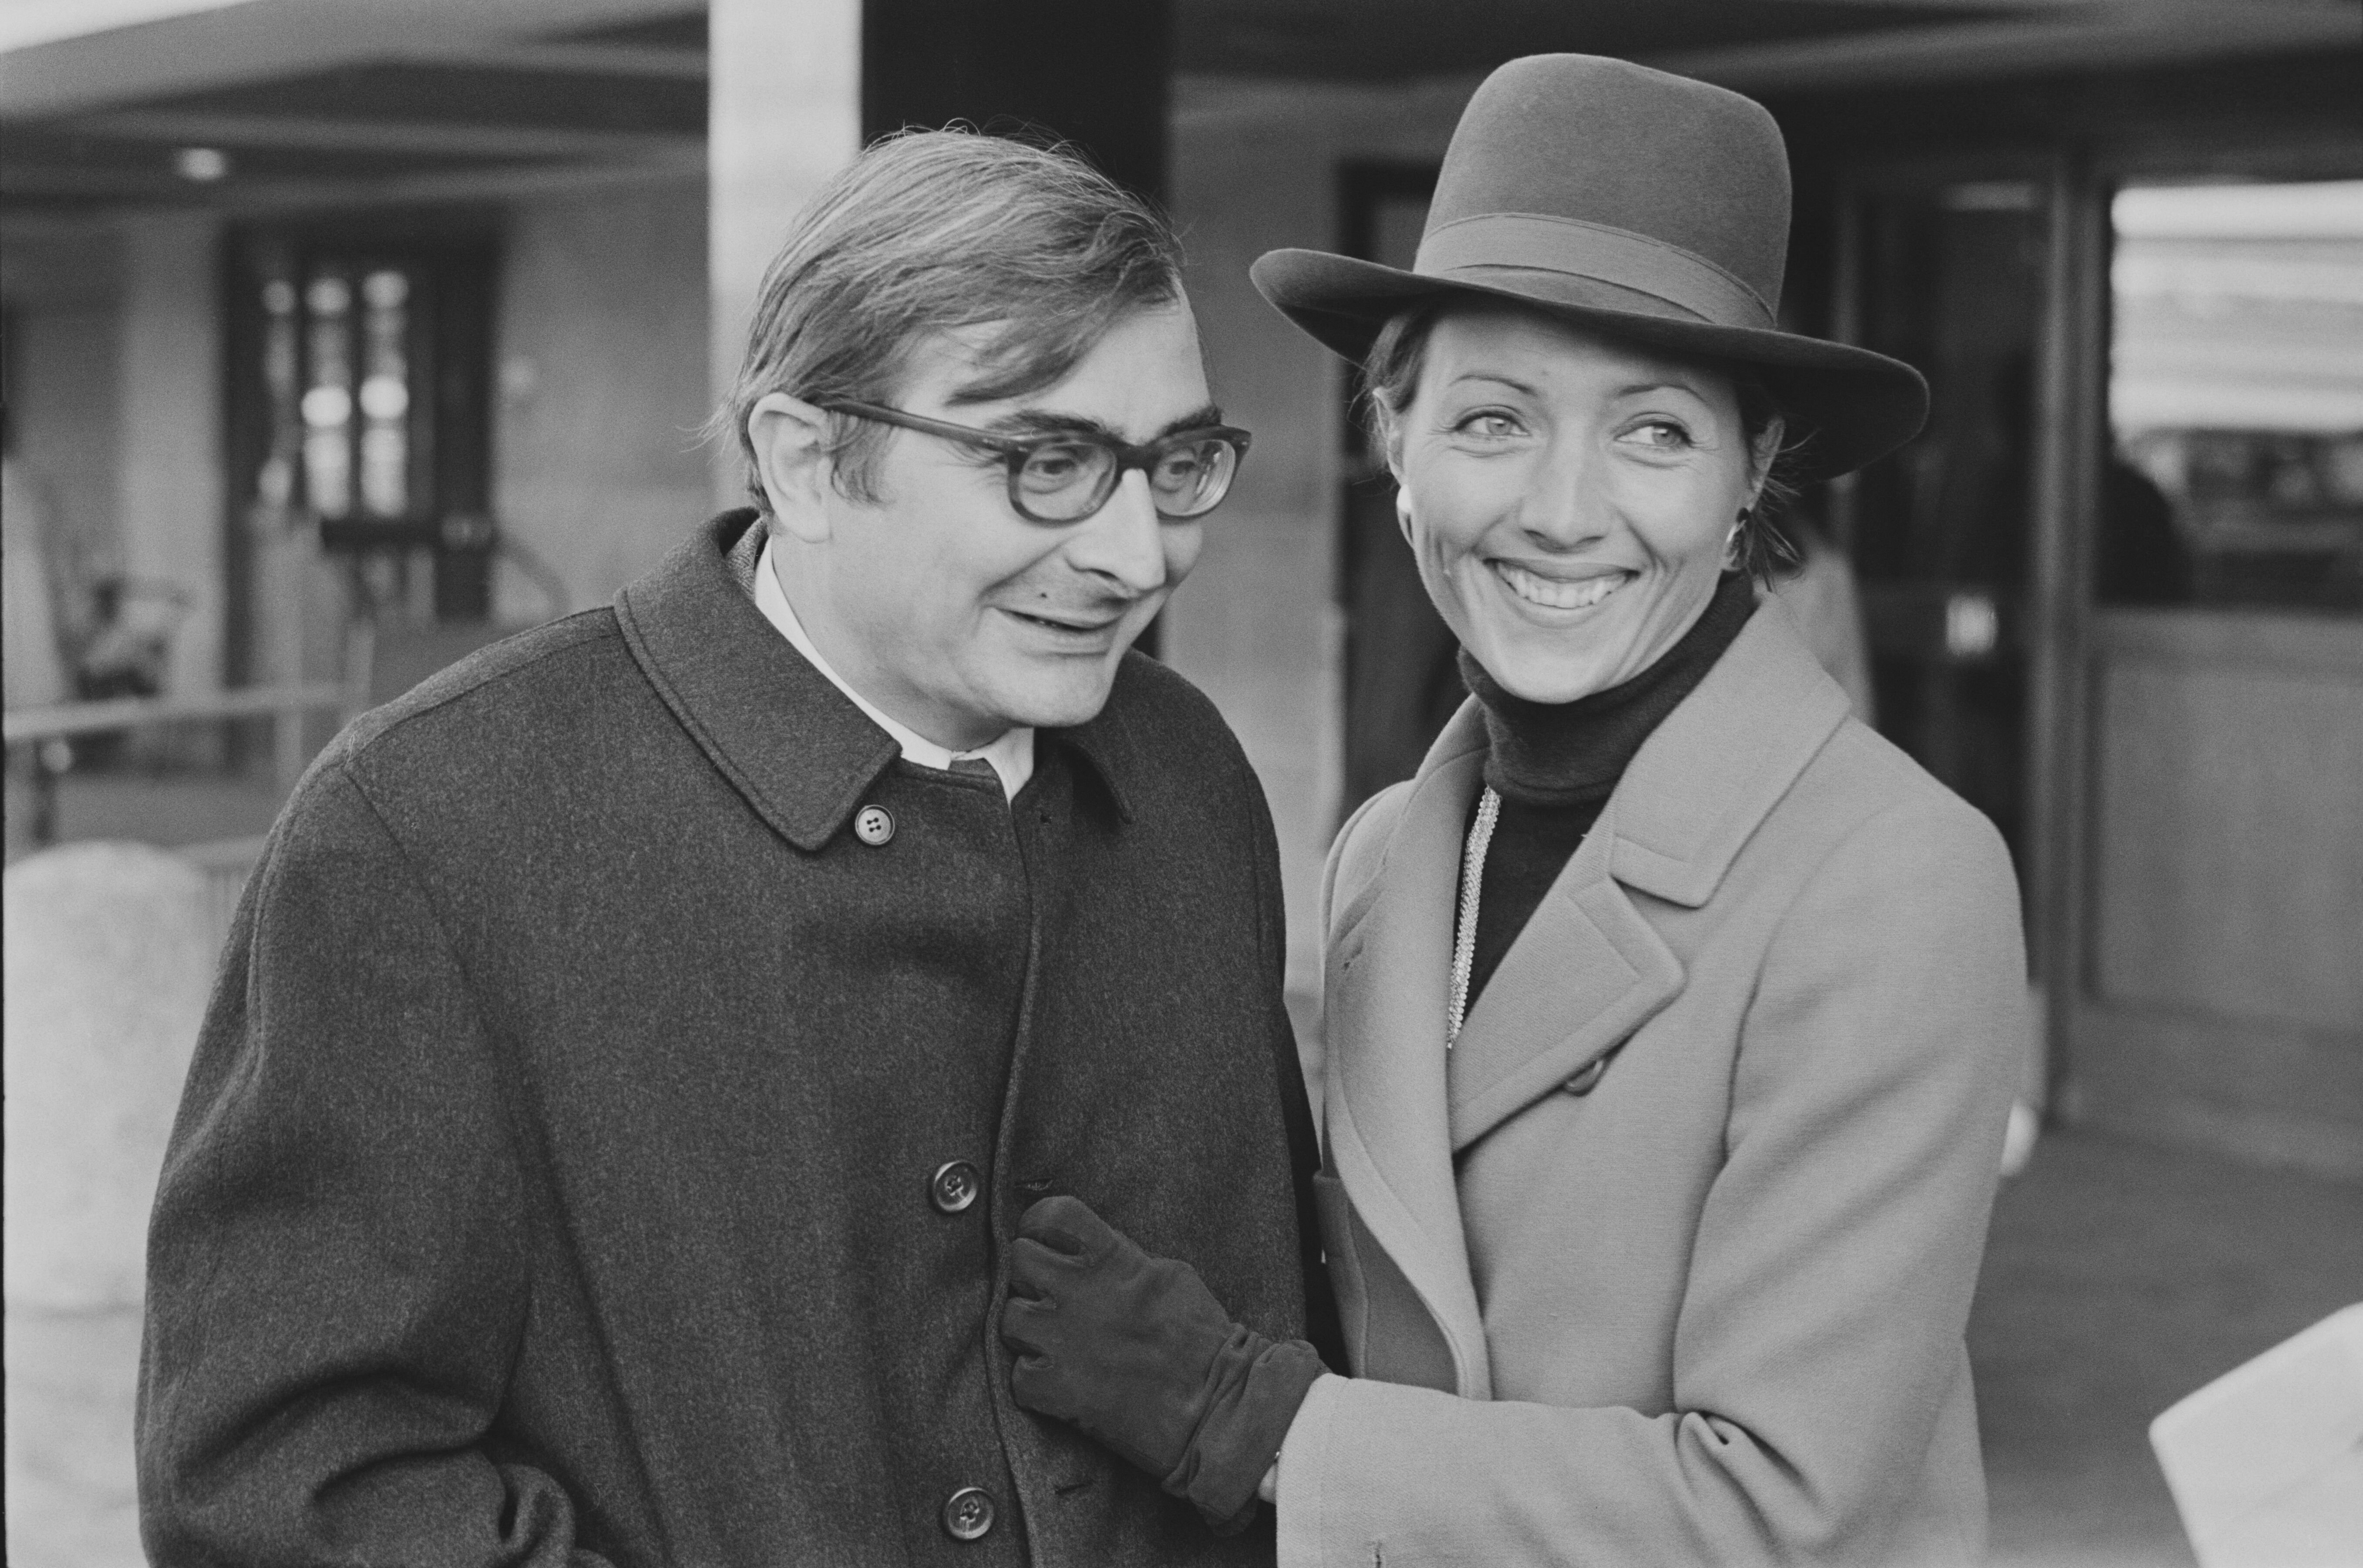 Claude Chabrol avec son épouse, Stéphane Audran à l'aéroport d'Heathrow, Londres, Royaume-Uni. | Photo : Getty Images